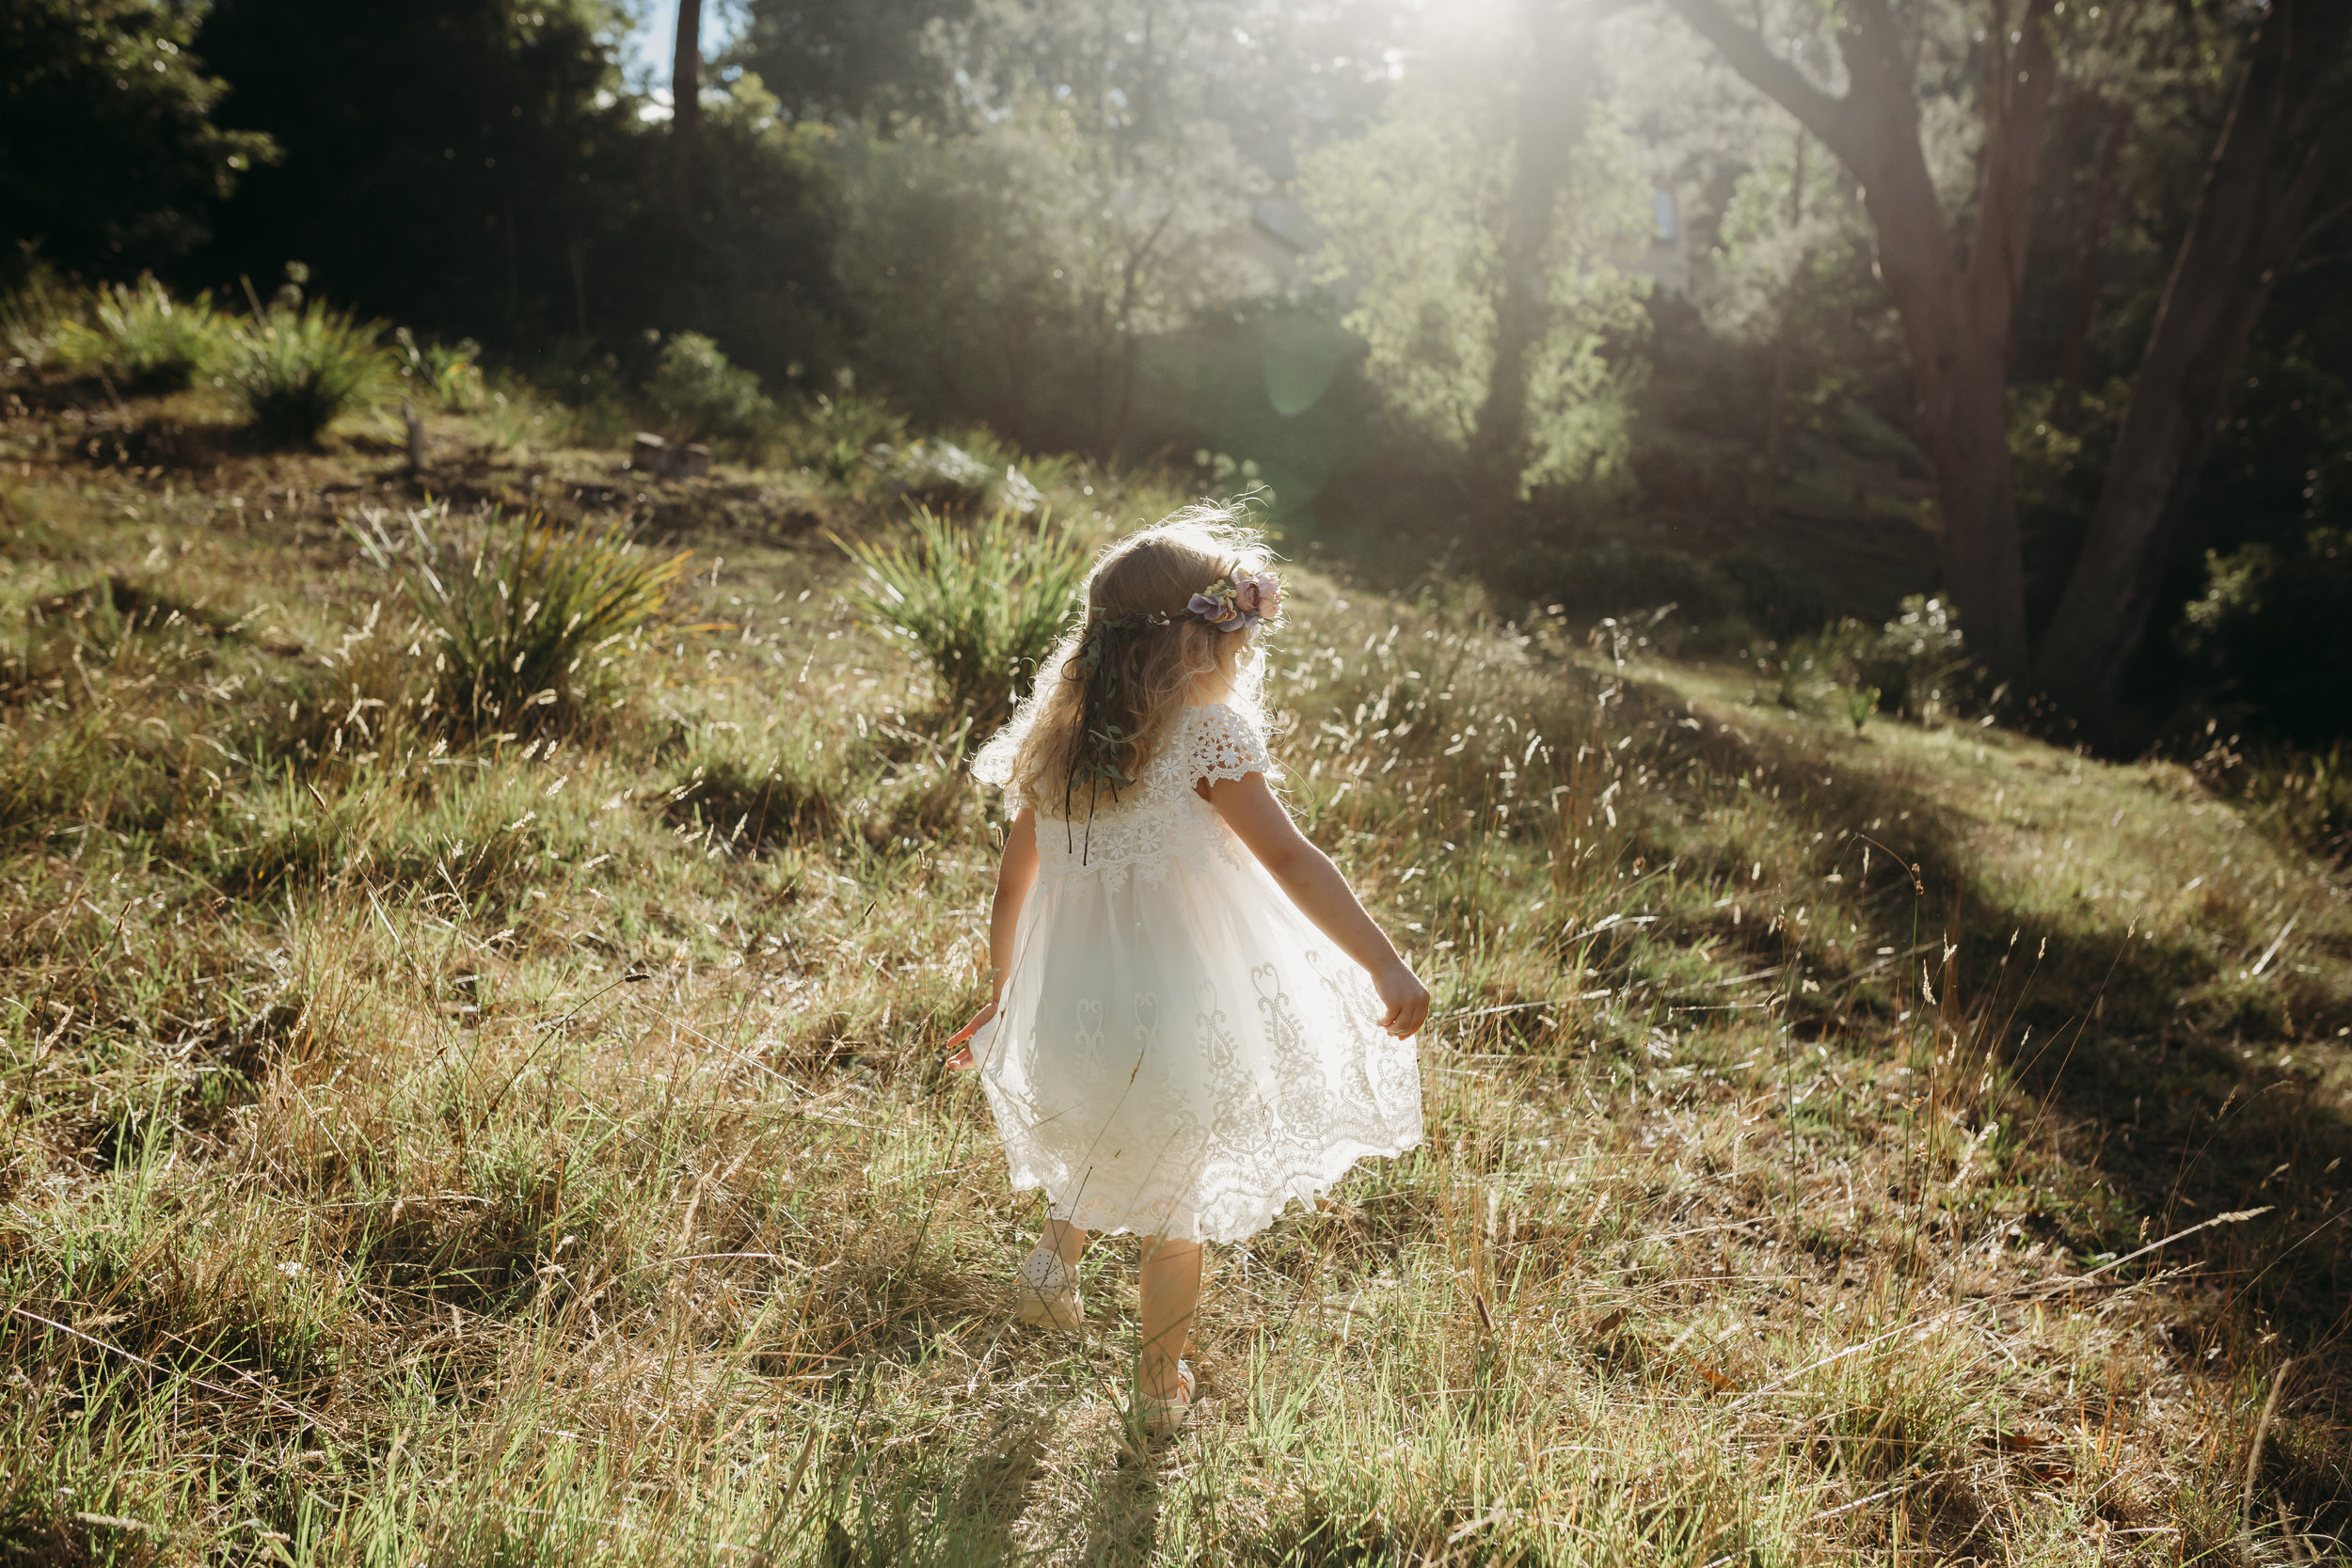 little girl twirling her dress in a field bathed in golden light